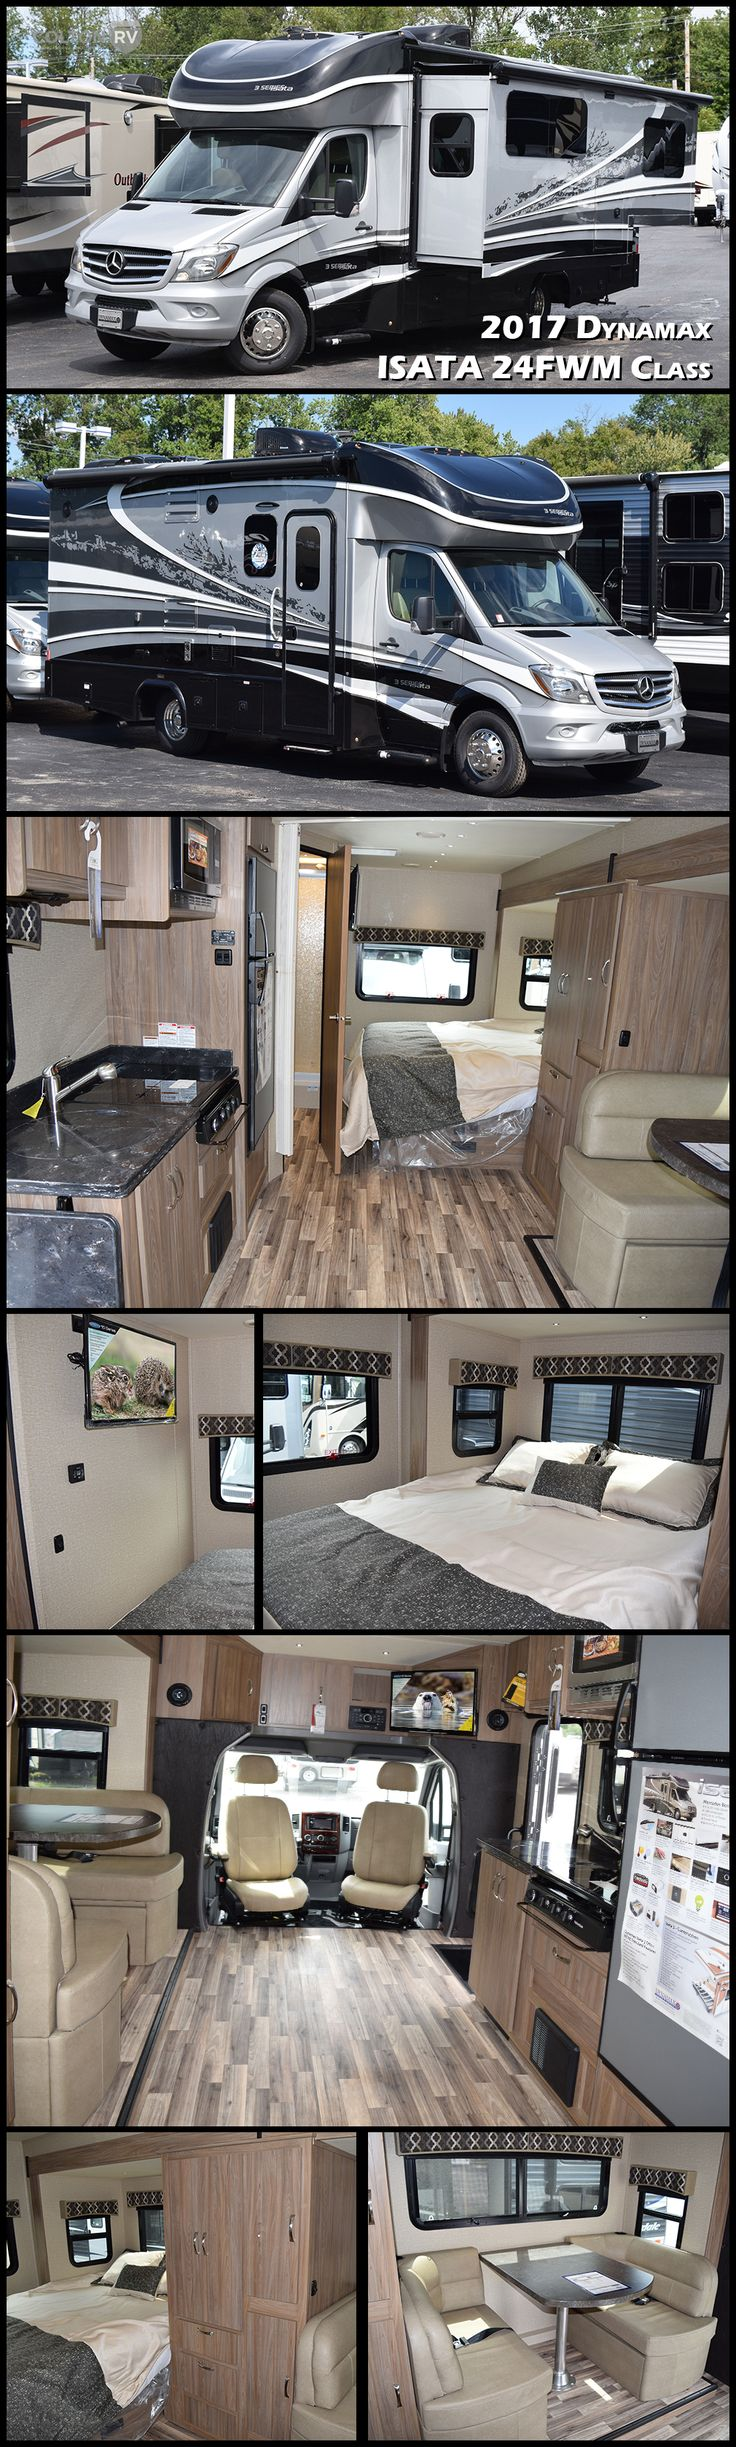 Built on the fuel efficient Mercedes Sprinter platform, the 2017 DYNAMAX ISATA 3 model 24FW Class C motorhome embodies everything you love about Dynamax. Legendary full body paint, contemporary interiors and functional living space, paired with a high performance chassis. The Isata 3 boasts an extensive list of upgraded, standard features not found in similar products and as always, the industry leading two-year warranty comes standard.